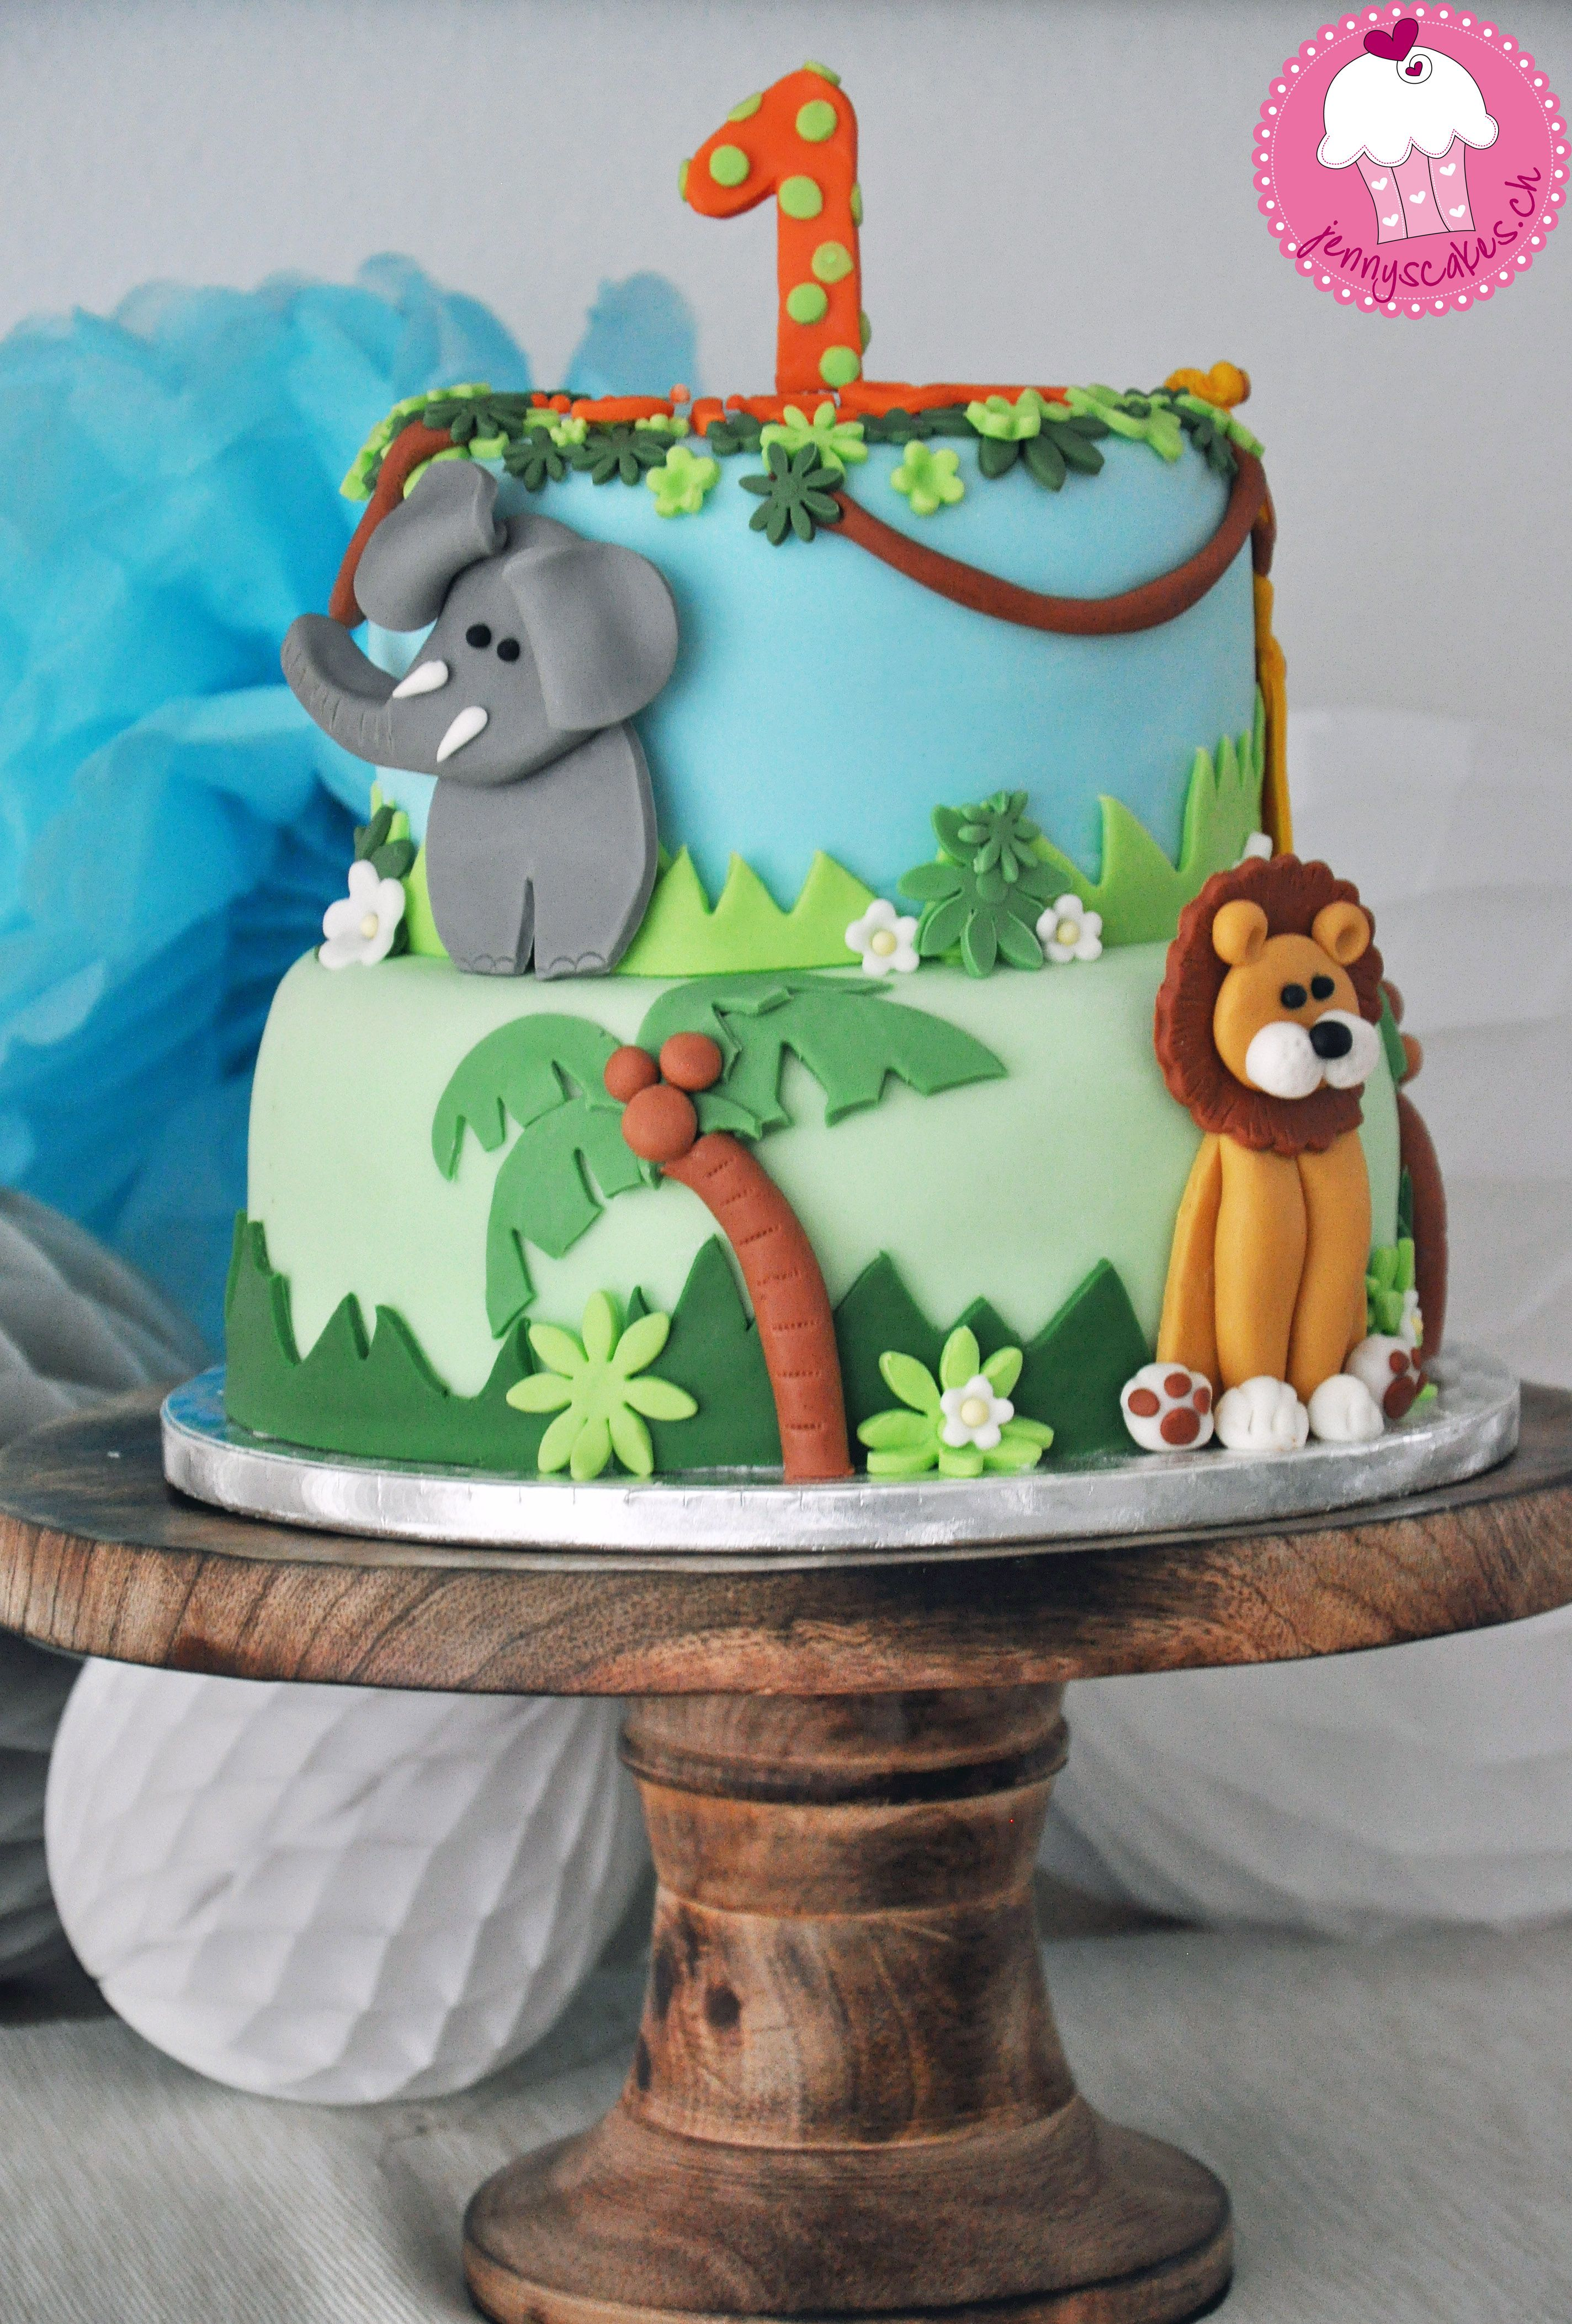 en supplies na decor pin themed recepty wholesale shower pinterest jungle vyzkou baby cake decorating